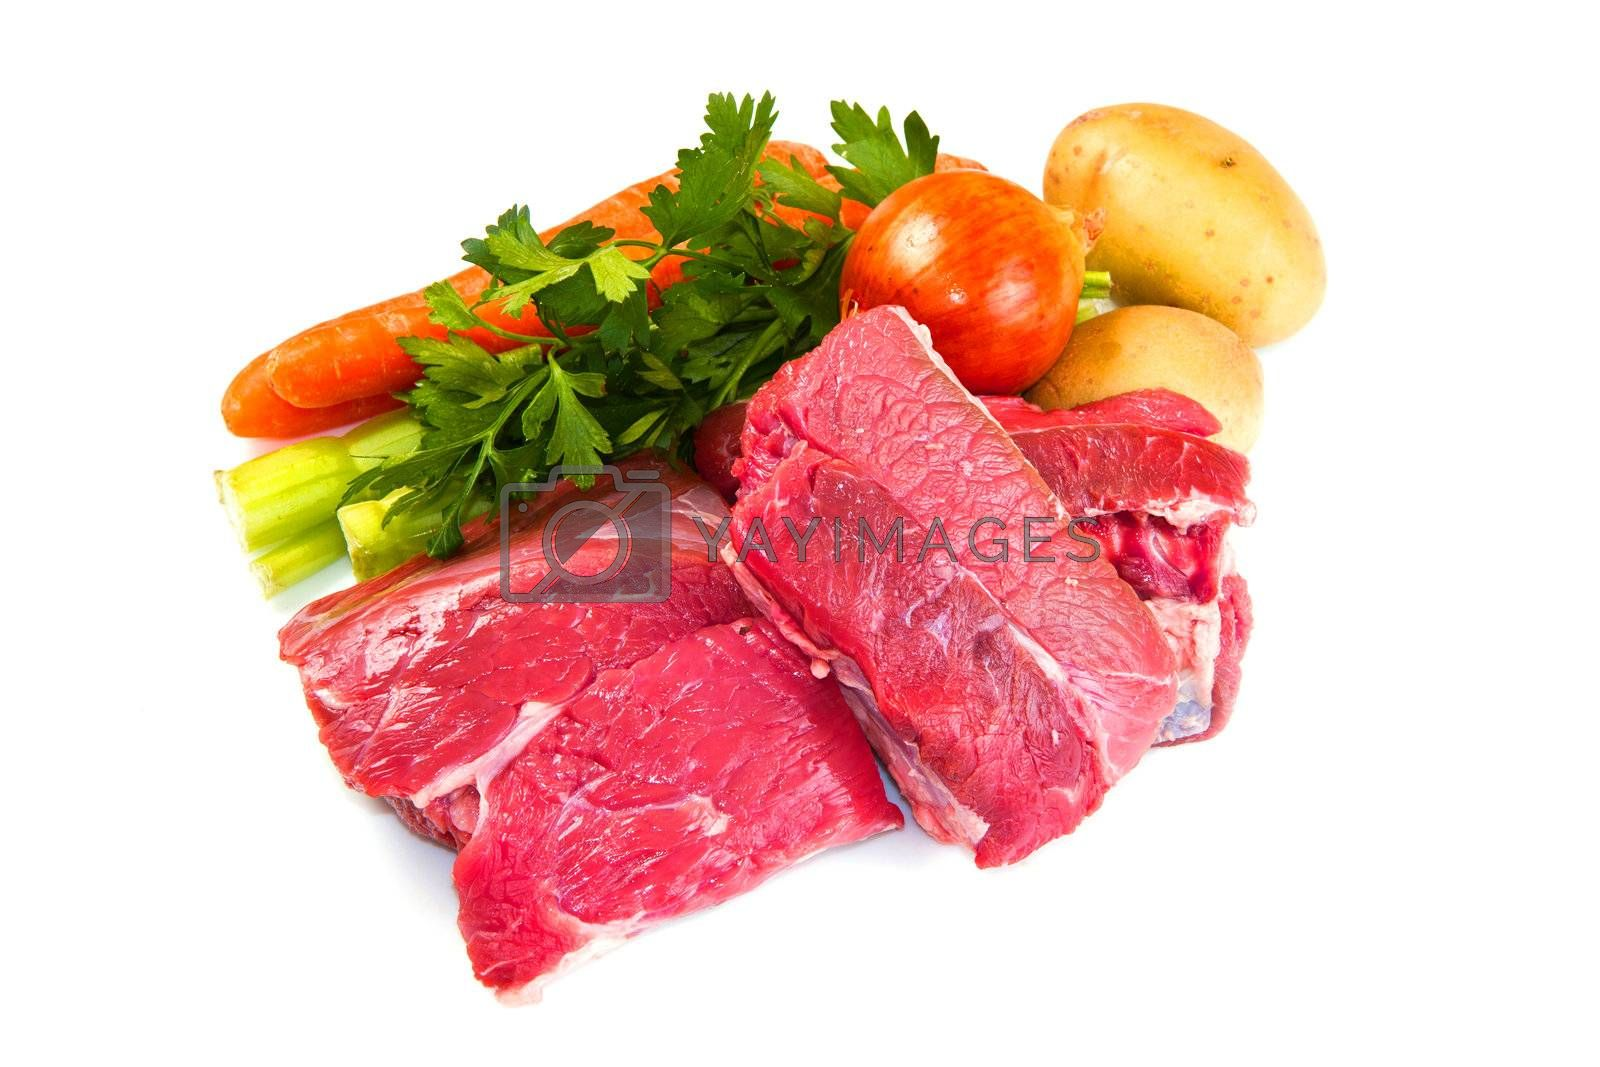 Royalty free image of meat for boiled with fresh vegetables by lsantilli